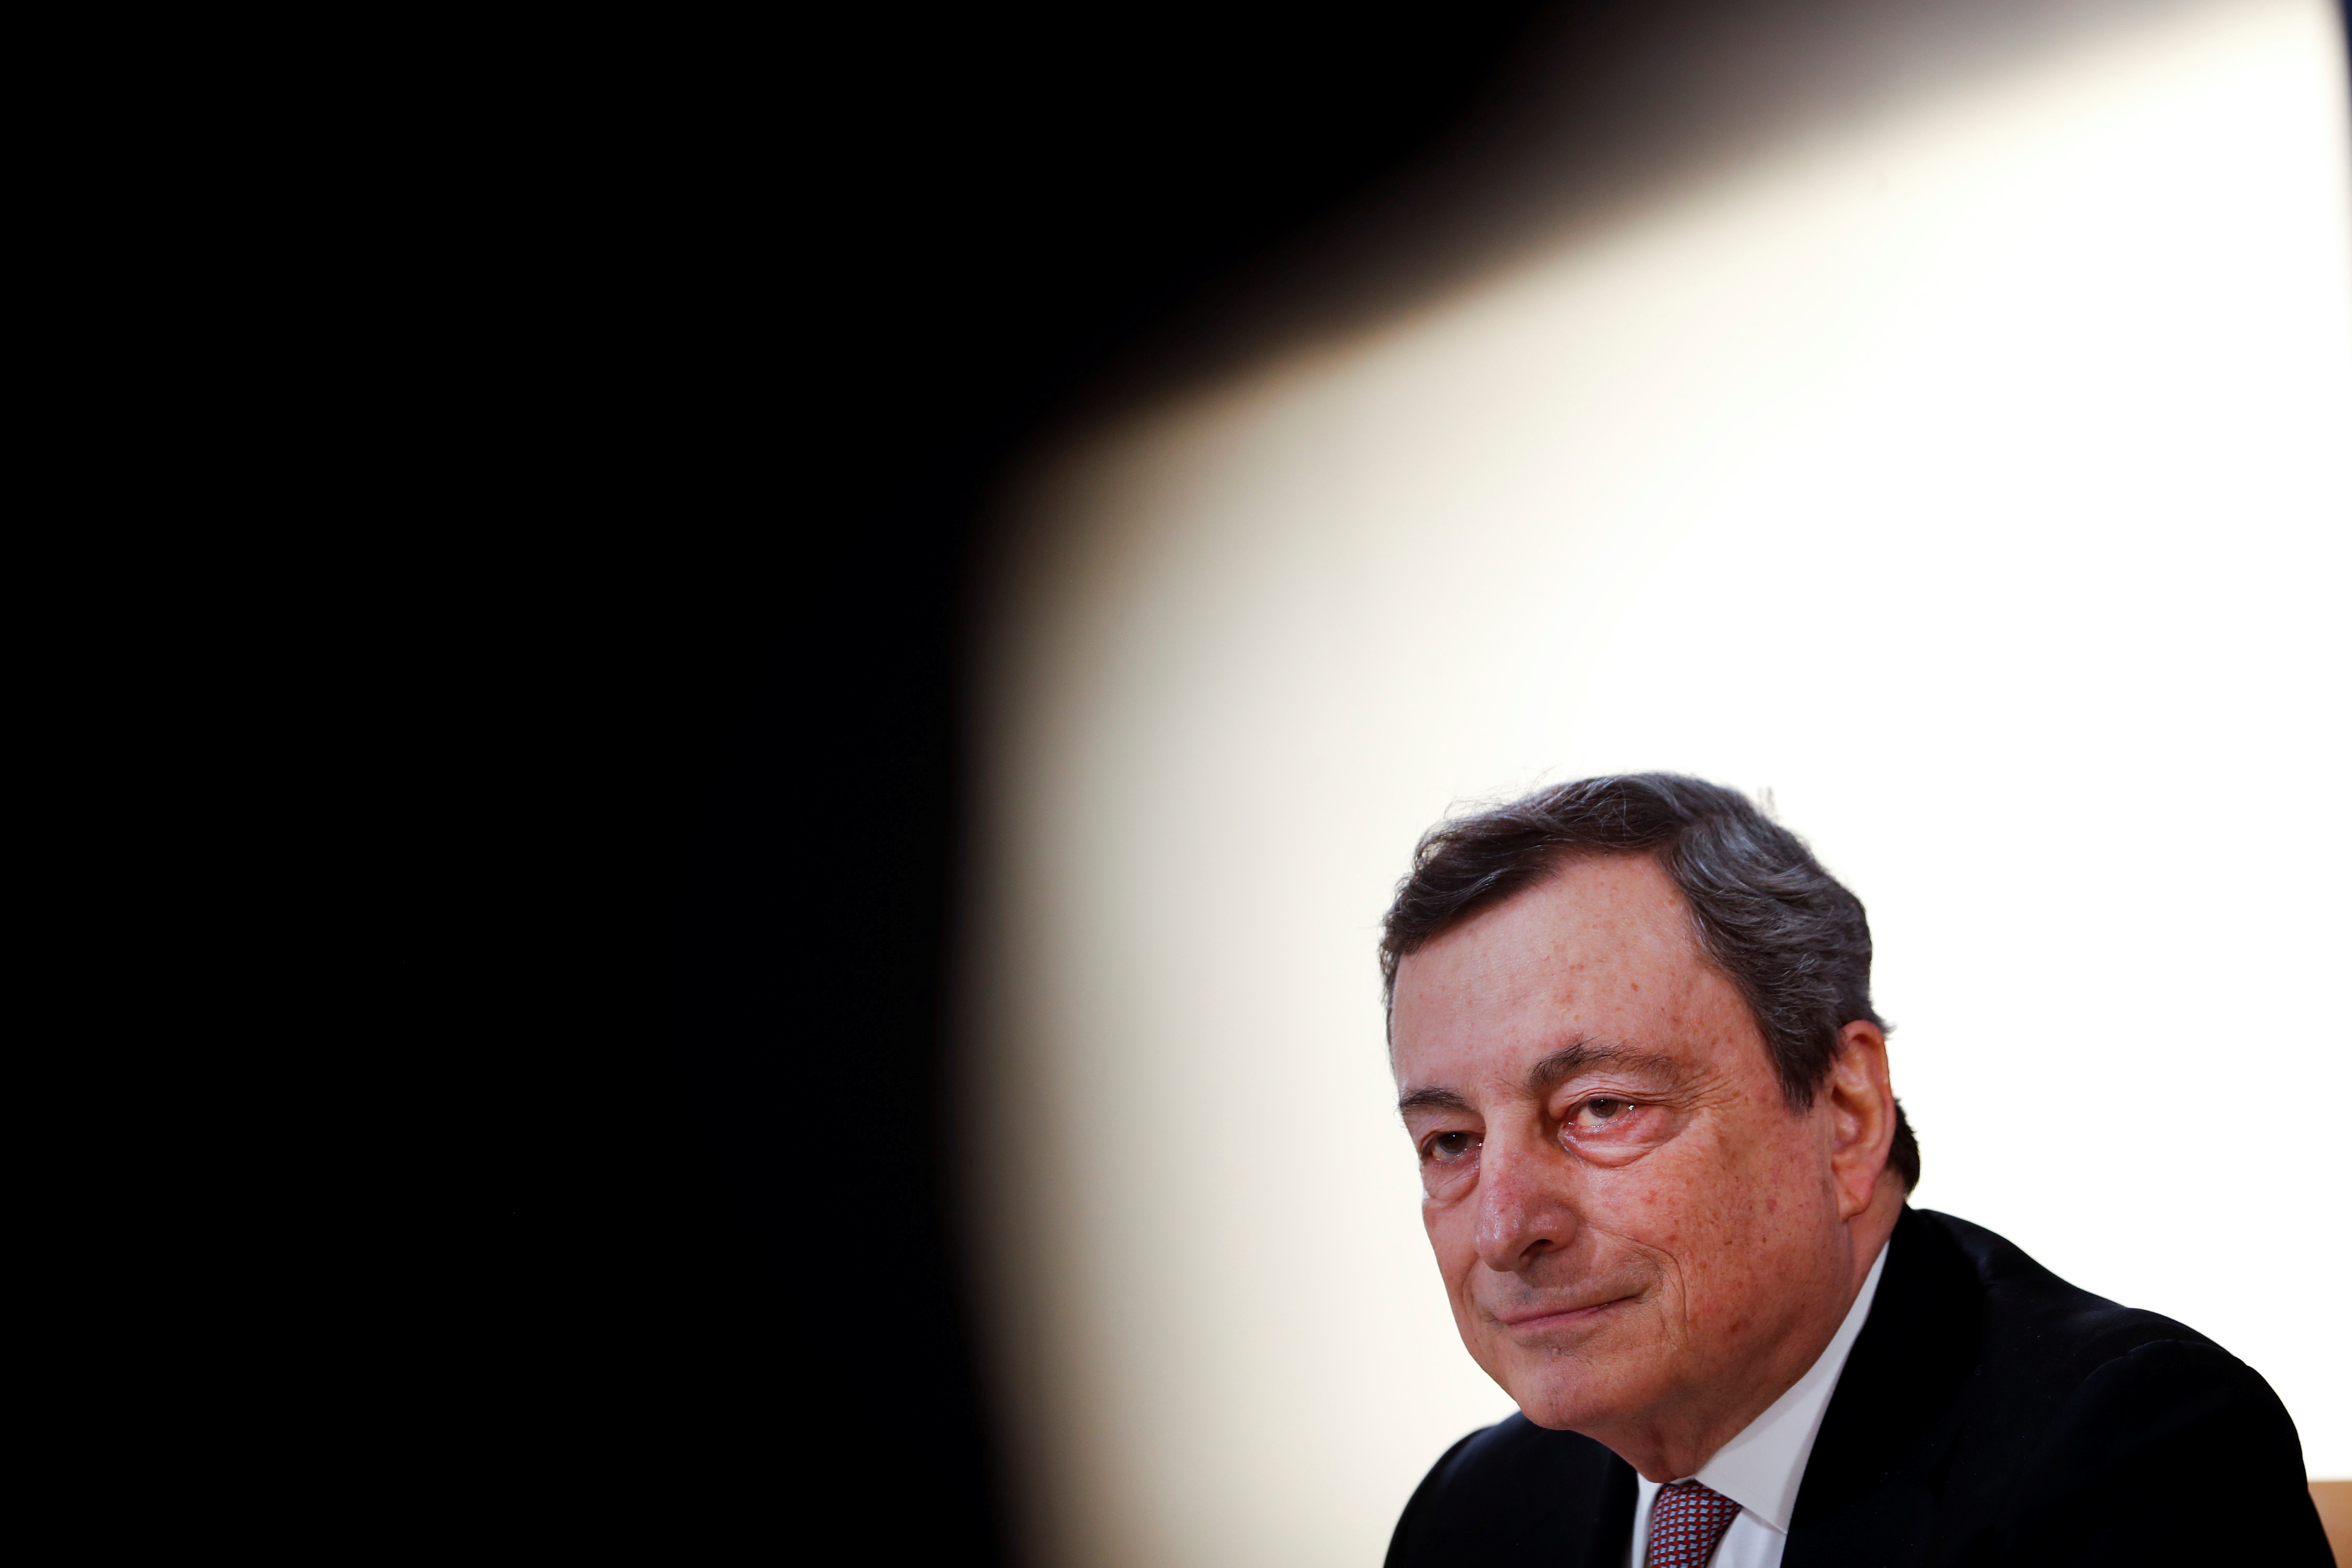 Italy's Prime Minister Mario Draghi speaks during a media conference at an EU summit in Porto, Portugal May 8, 2021. Francisco Seco/Pool via REUTERS